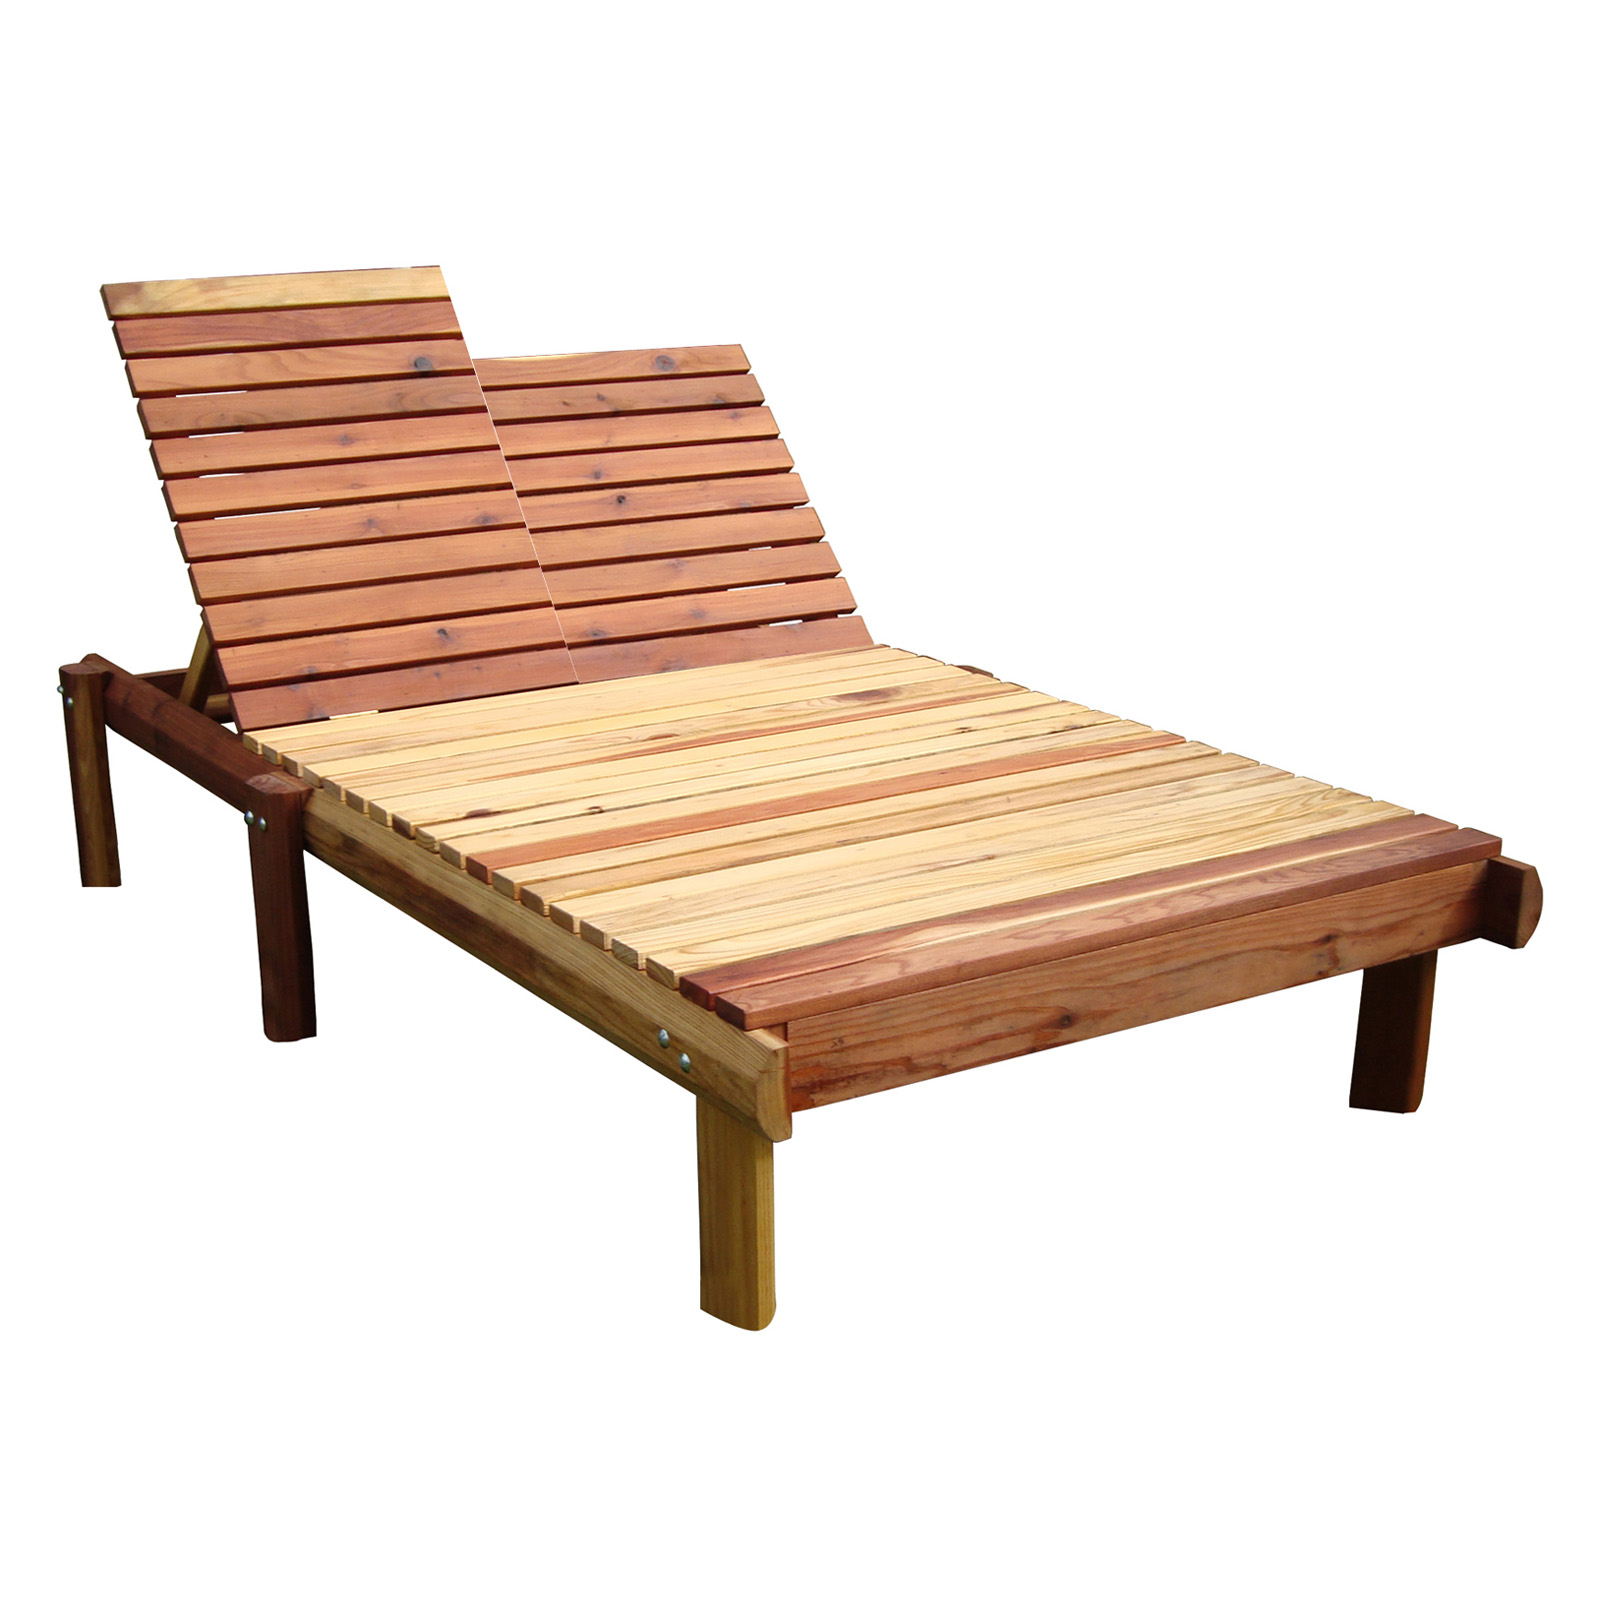 Best redwood double beach chaise lounge outdoor chaise for Beach chaise lounge